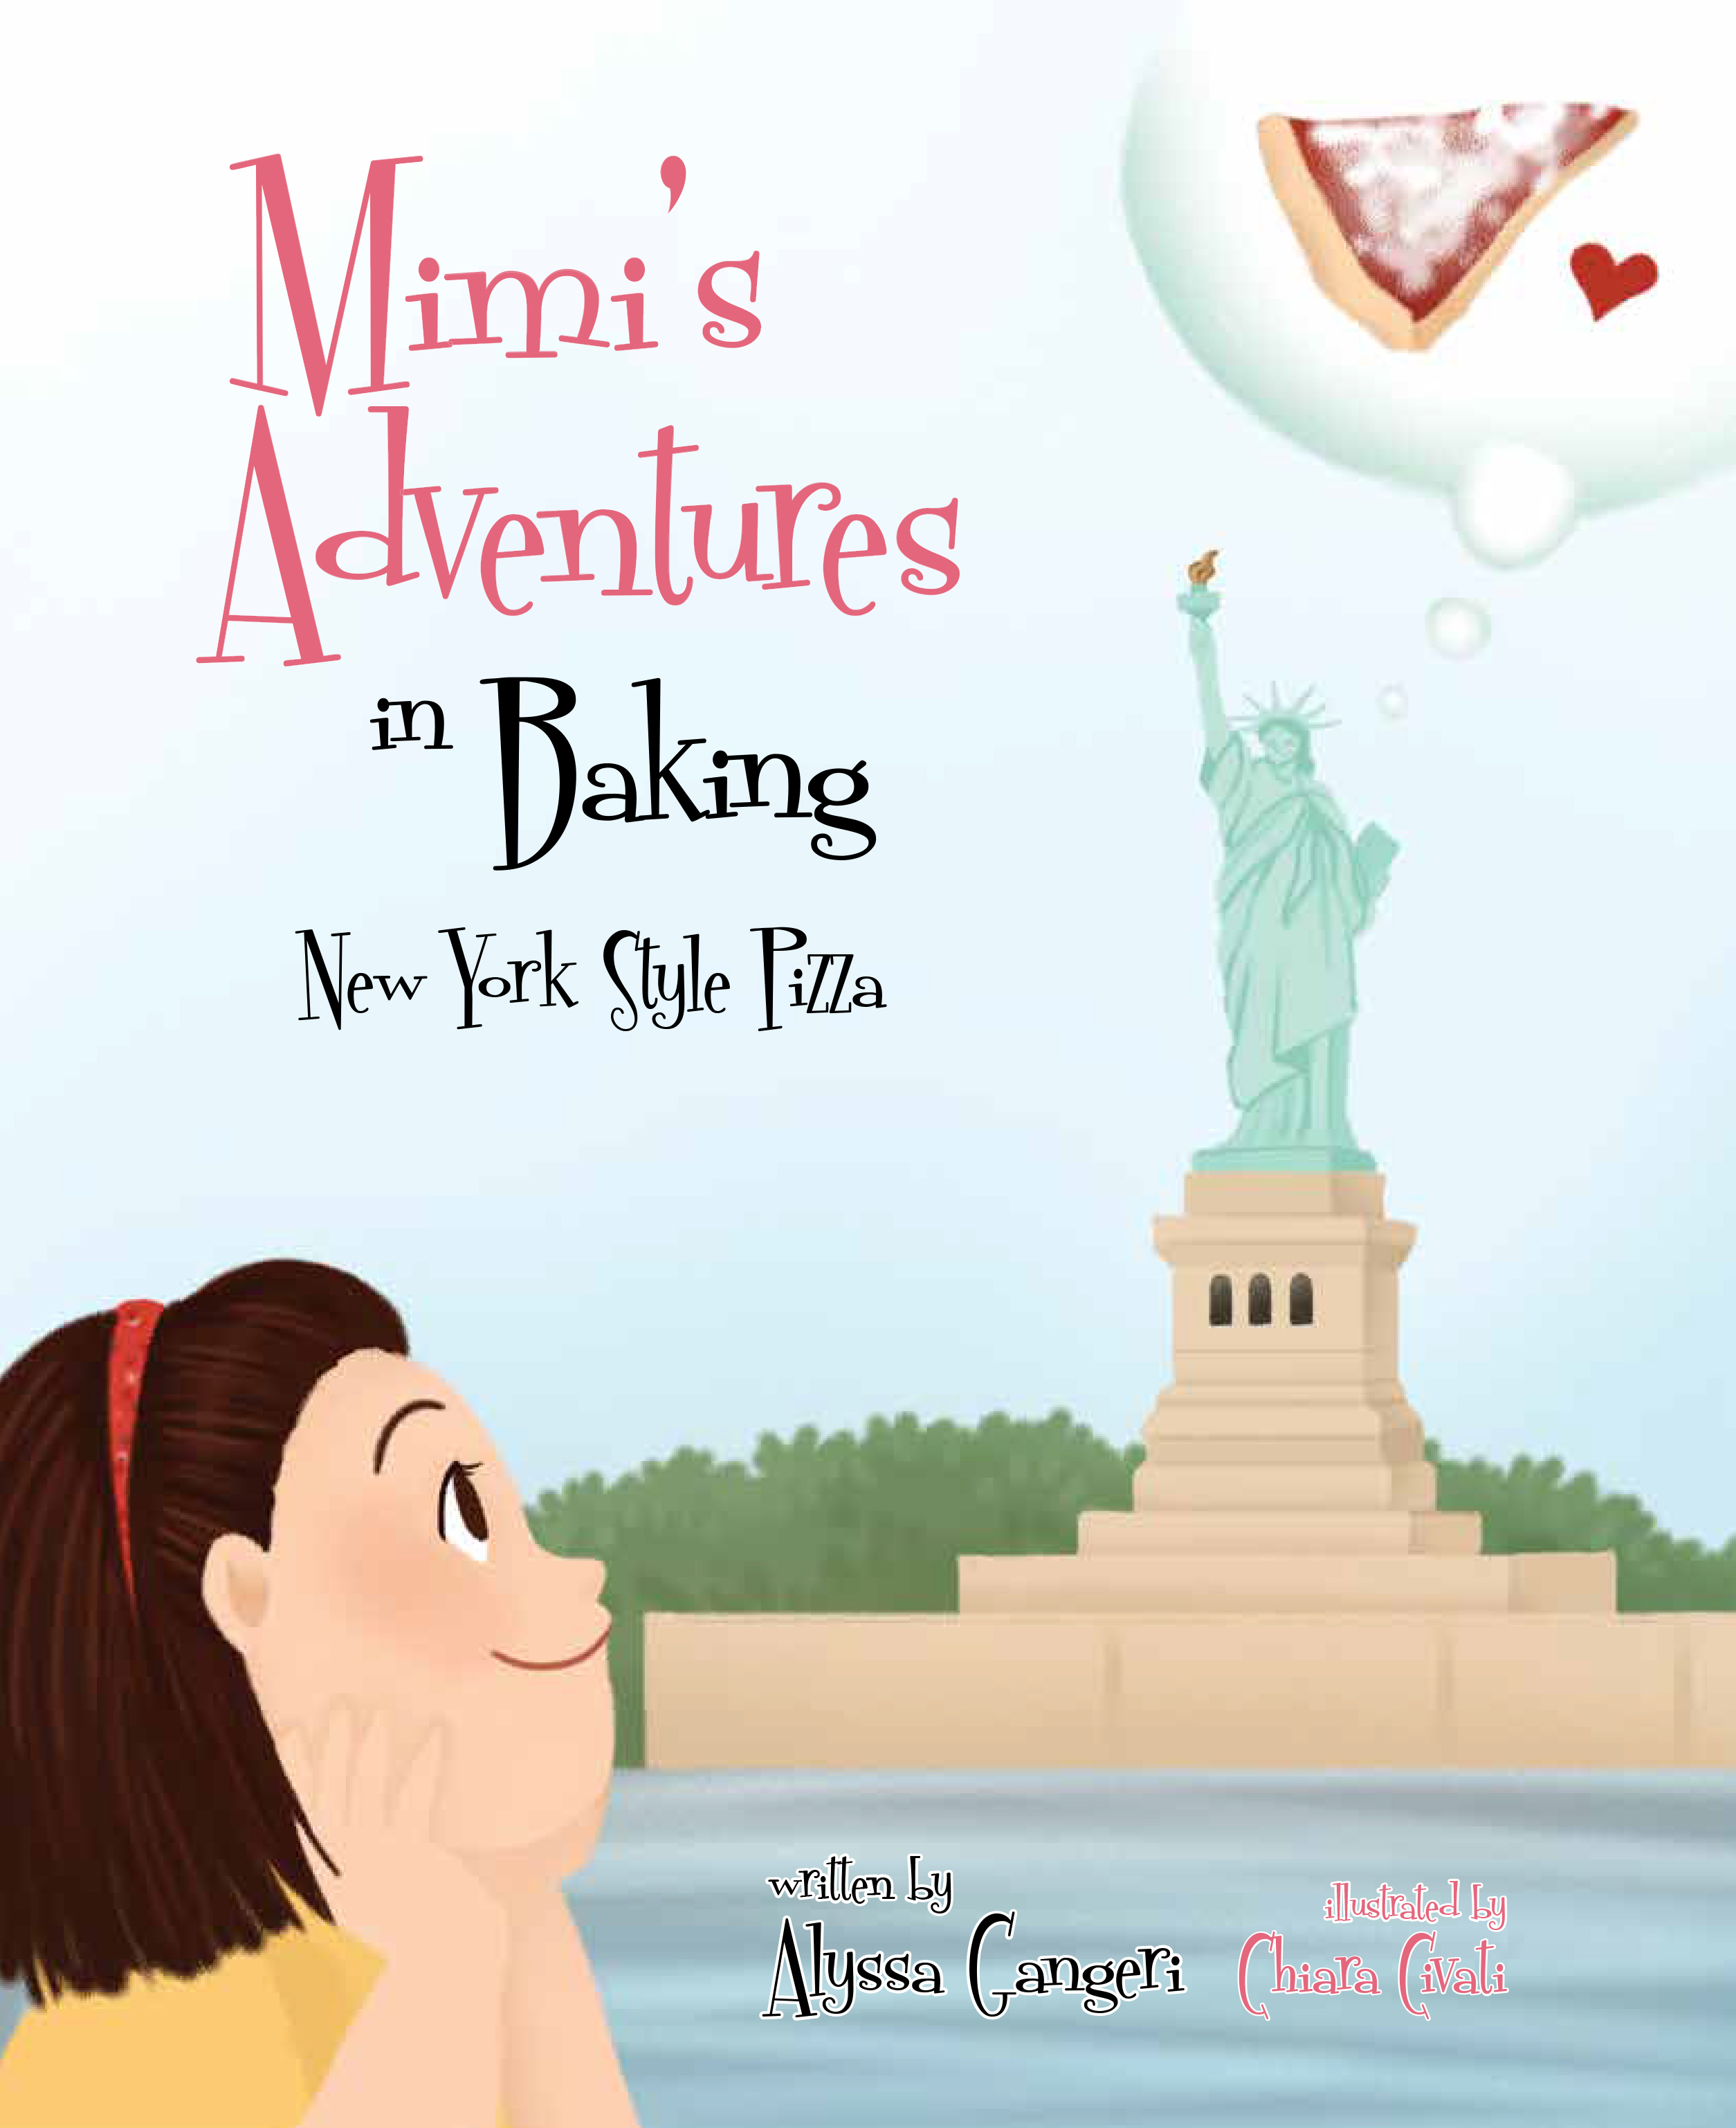 https://mascotbooks.com/wp-content/uploads/2016/11/MimisAdventuresInBaking_amazon.jpg